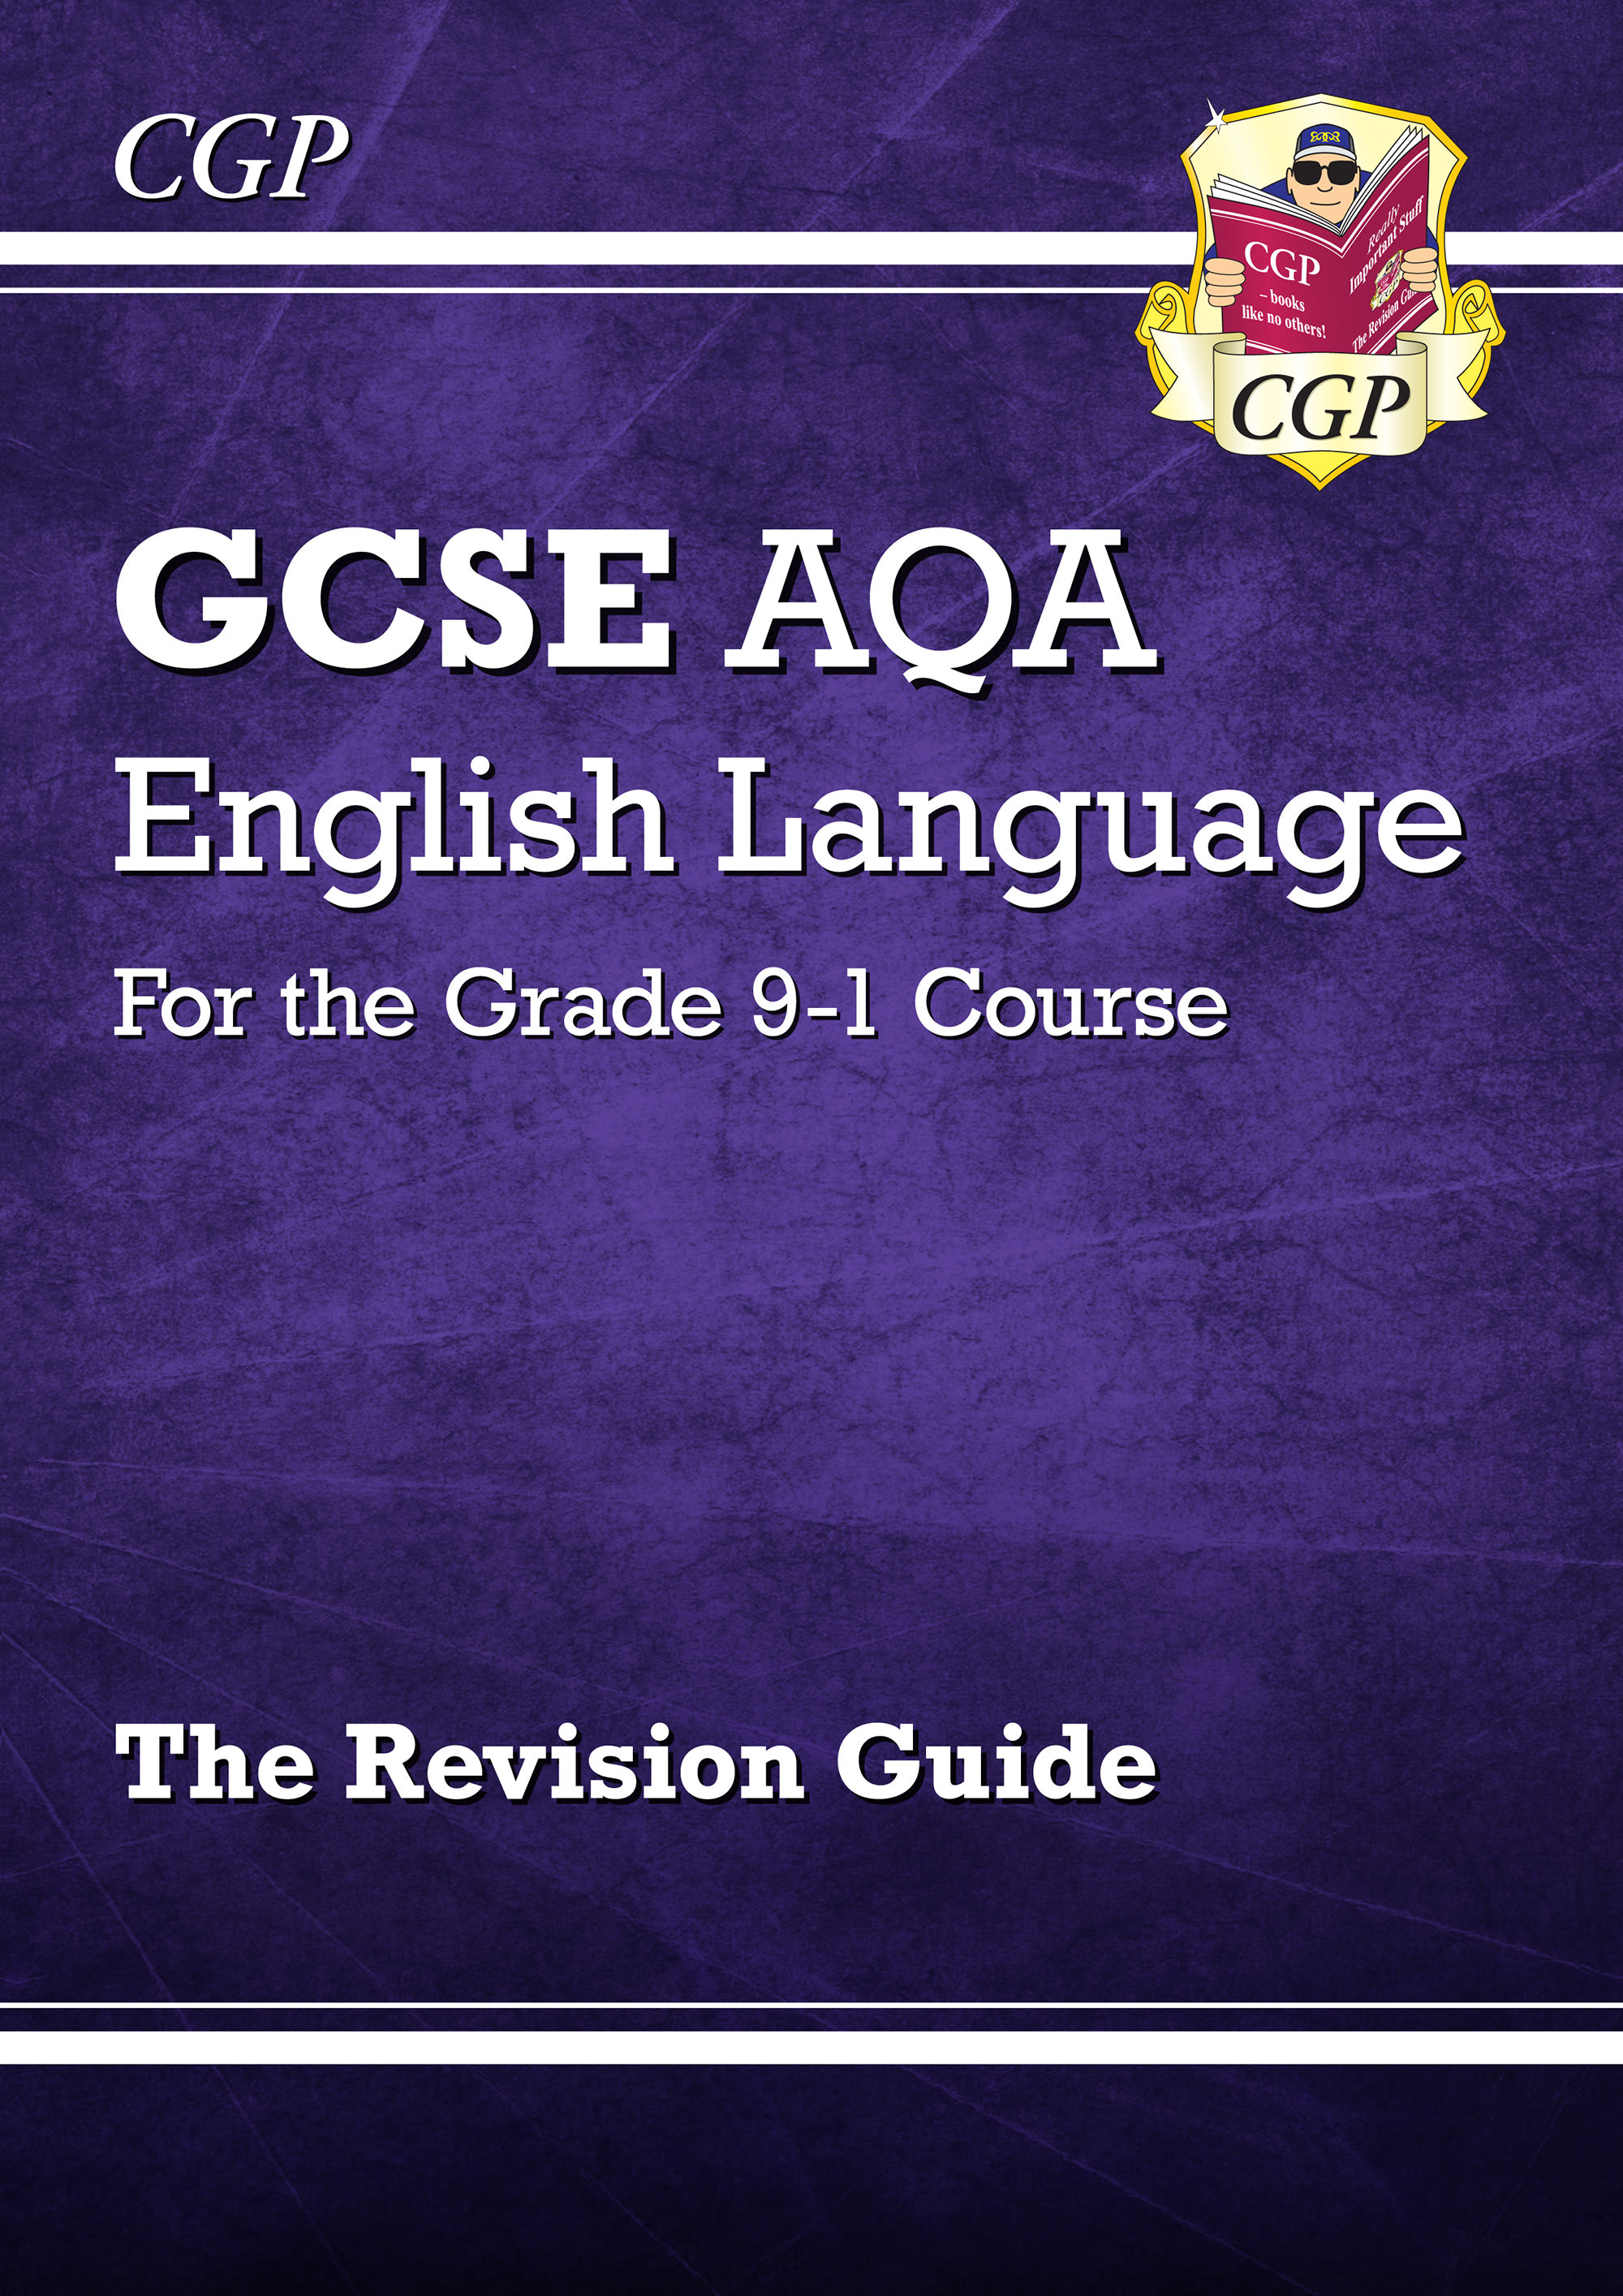 ENAR41 - GCSE English Language AQA Revision Guide - for the Grade 9-1 Course